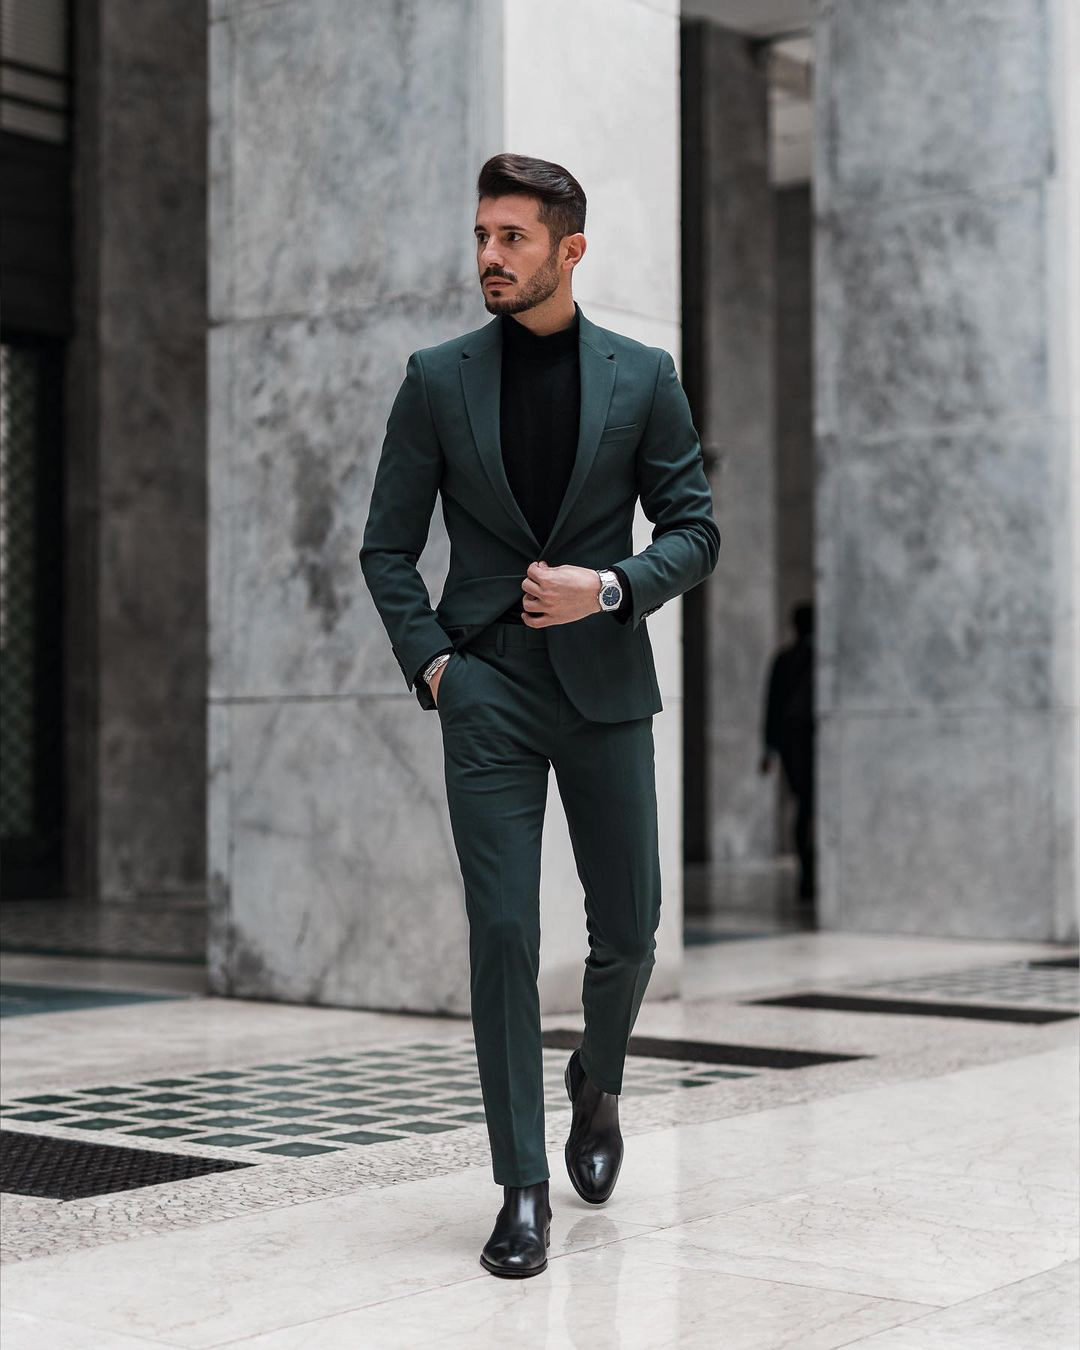 dark green suits are considered formal